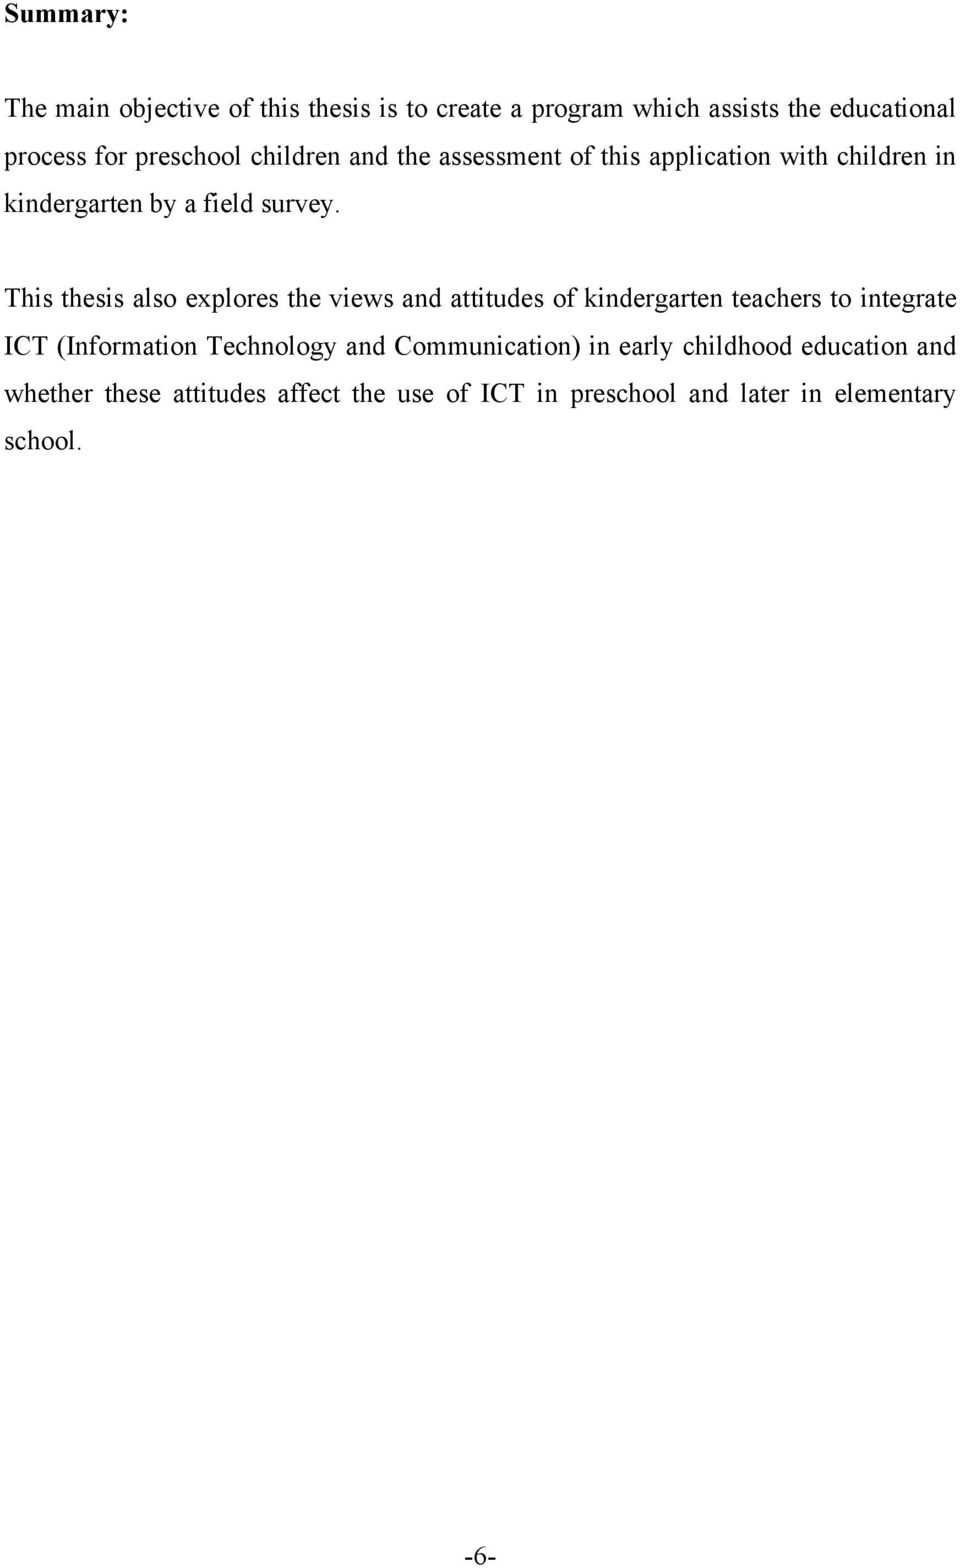 This thesis also explores the views and attitudes of kindergarten teachers to integrate ICT (Information Technology and